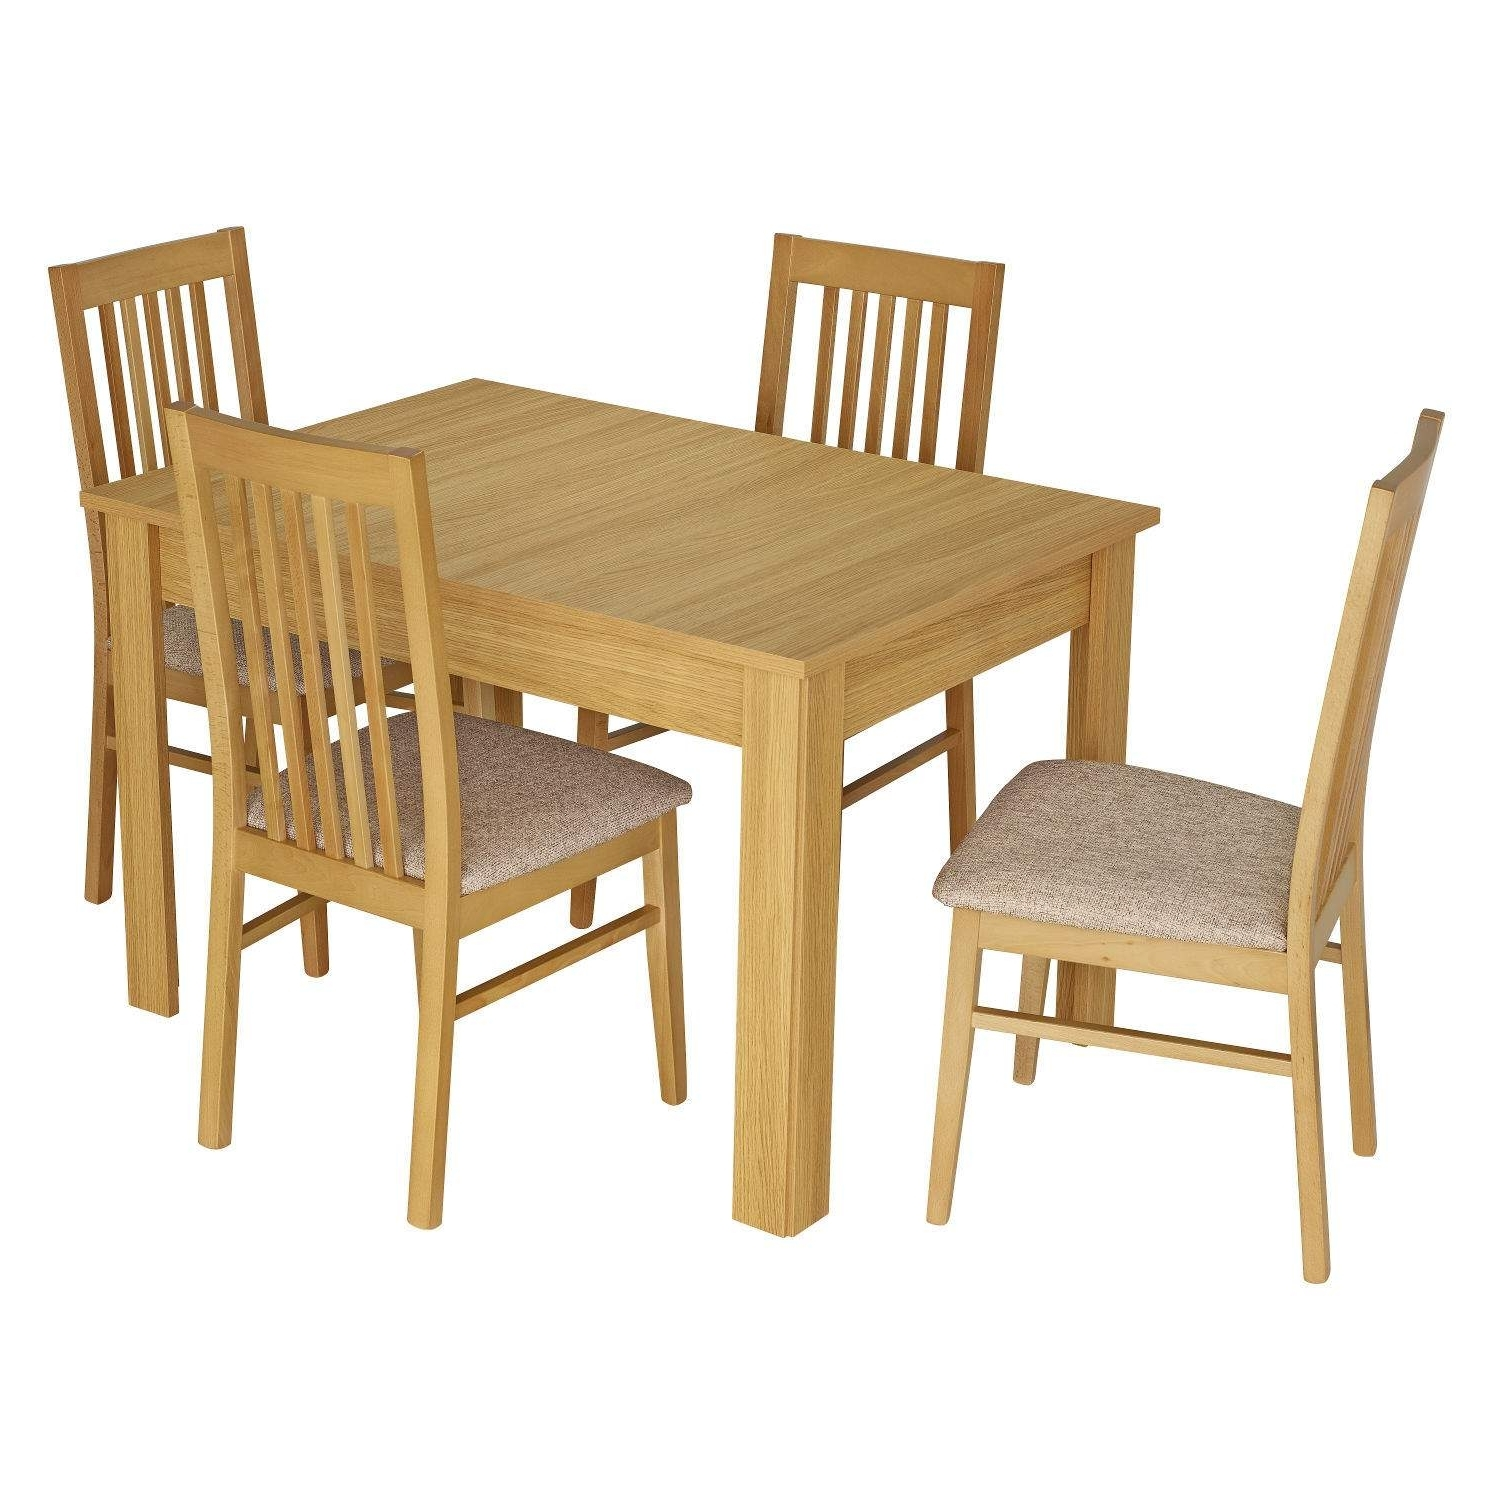 Salou Small Extending Dining Table With 4 Chairs Next Wooden Dining Inside Widely Used Small Extending Dining Tables And Chairs (View 10 of 25)